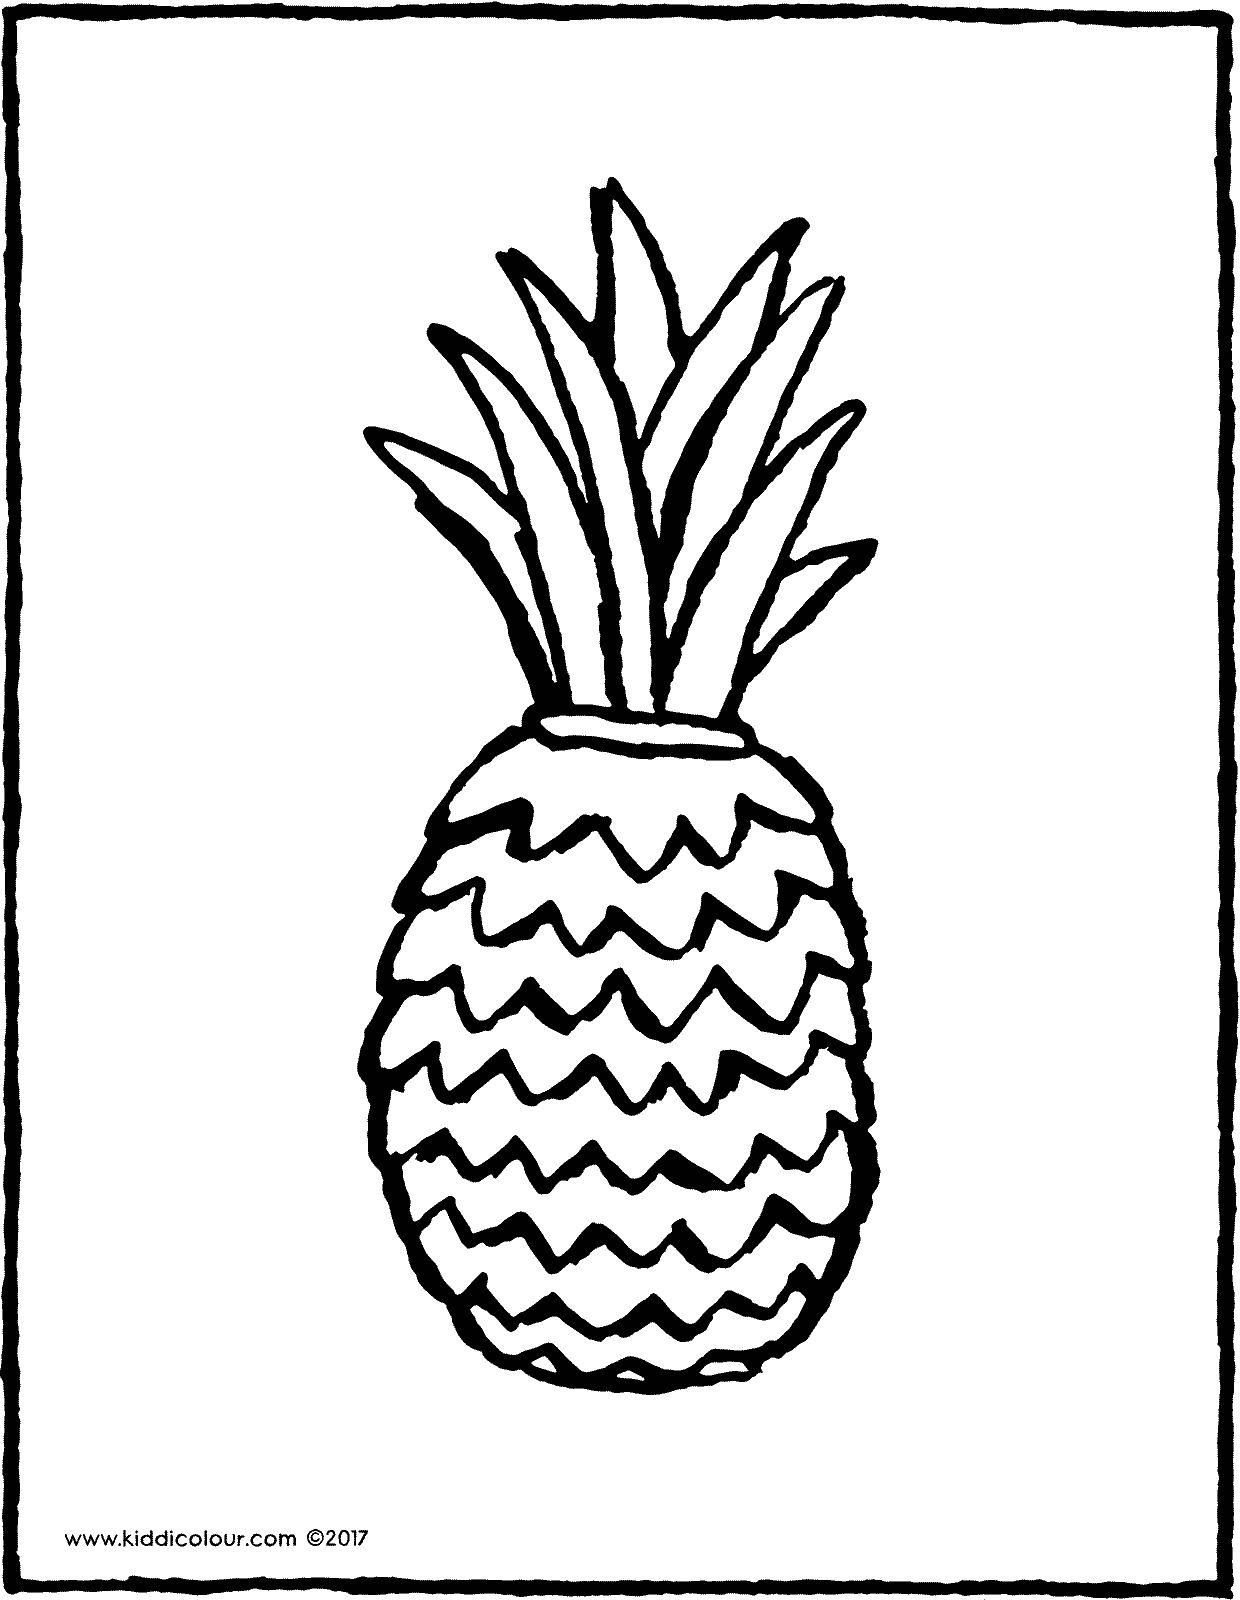 pineapple colouring picture free printable pineapple coloring pages for kids colouring pineapple picture